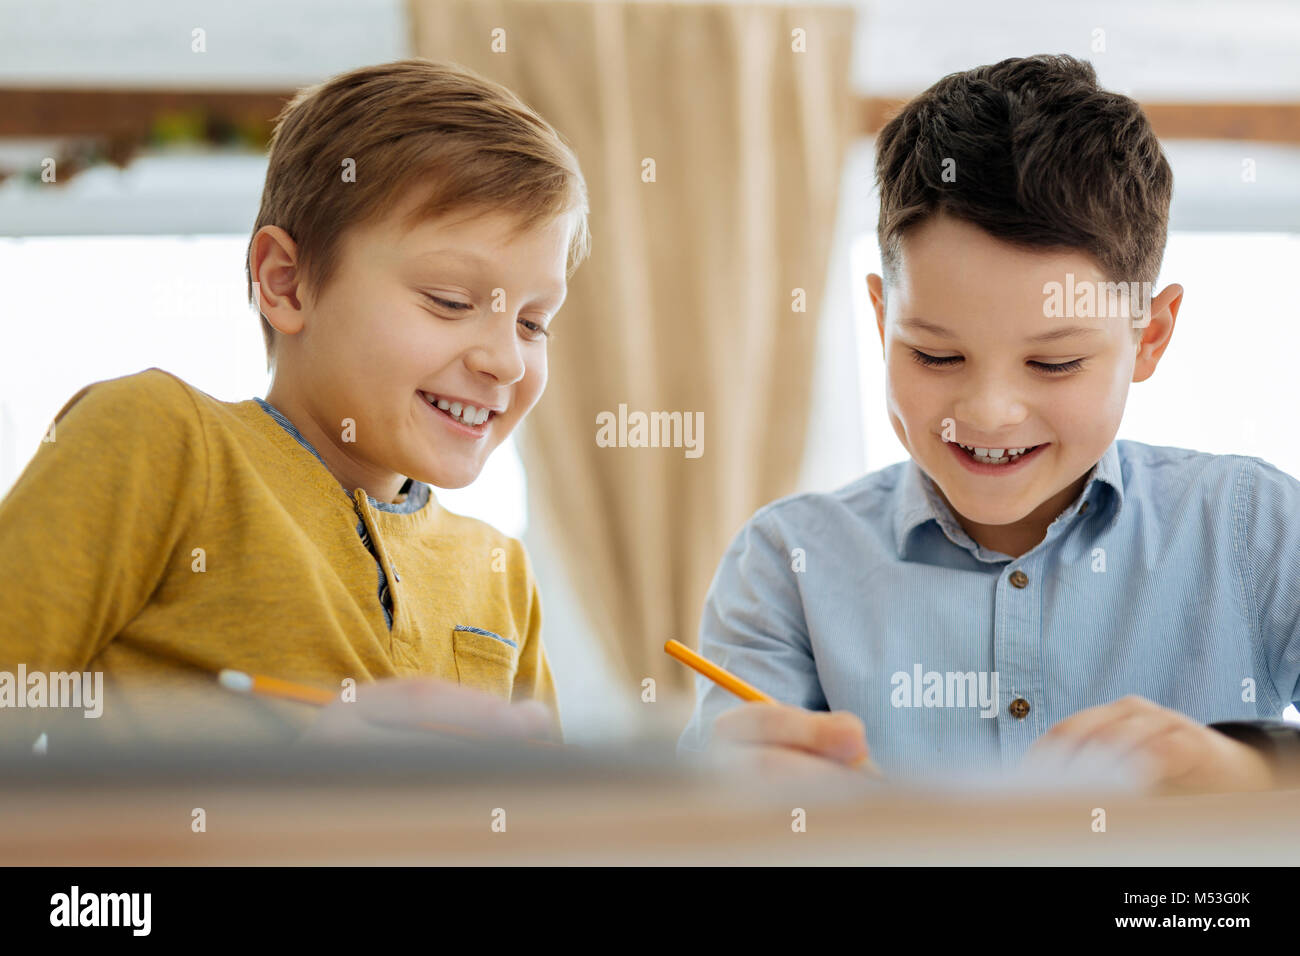 Happy pre-teen boys drawing together - Stock Image